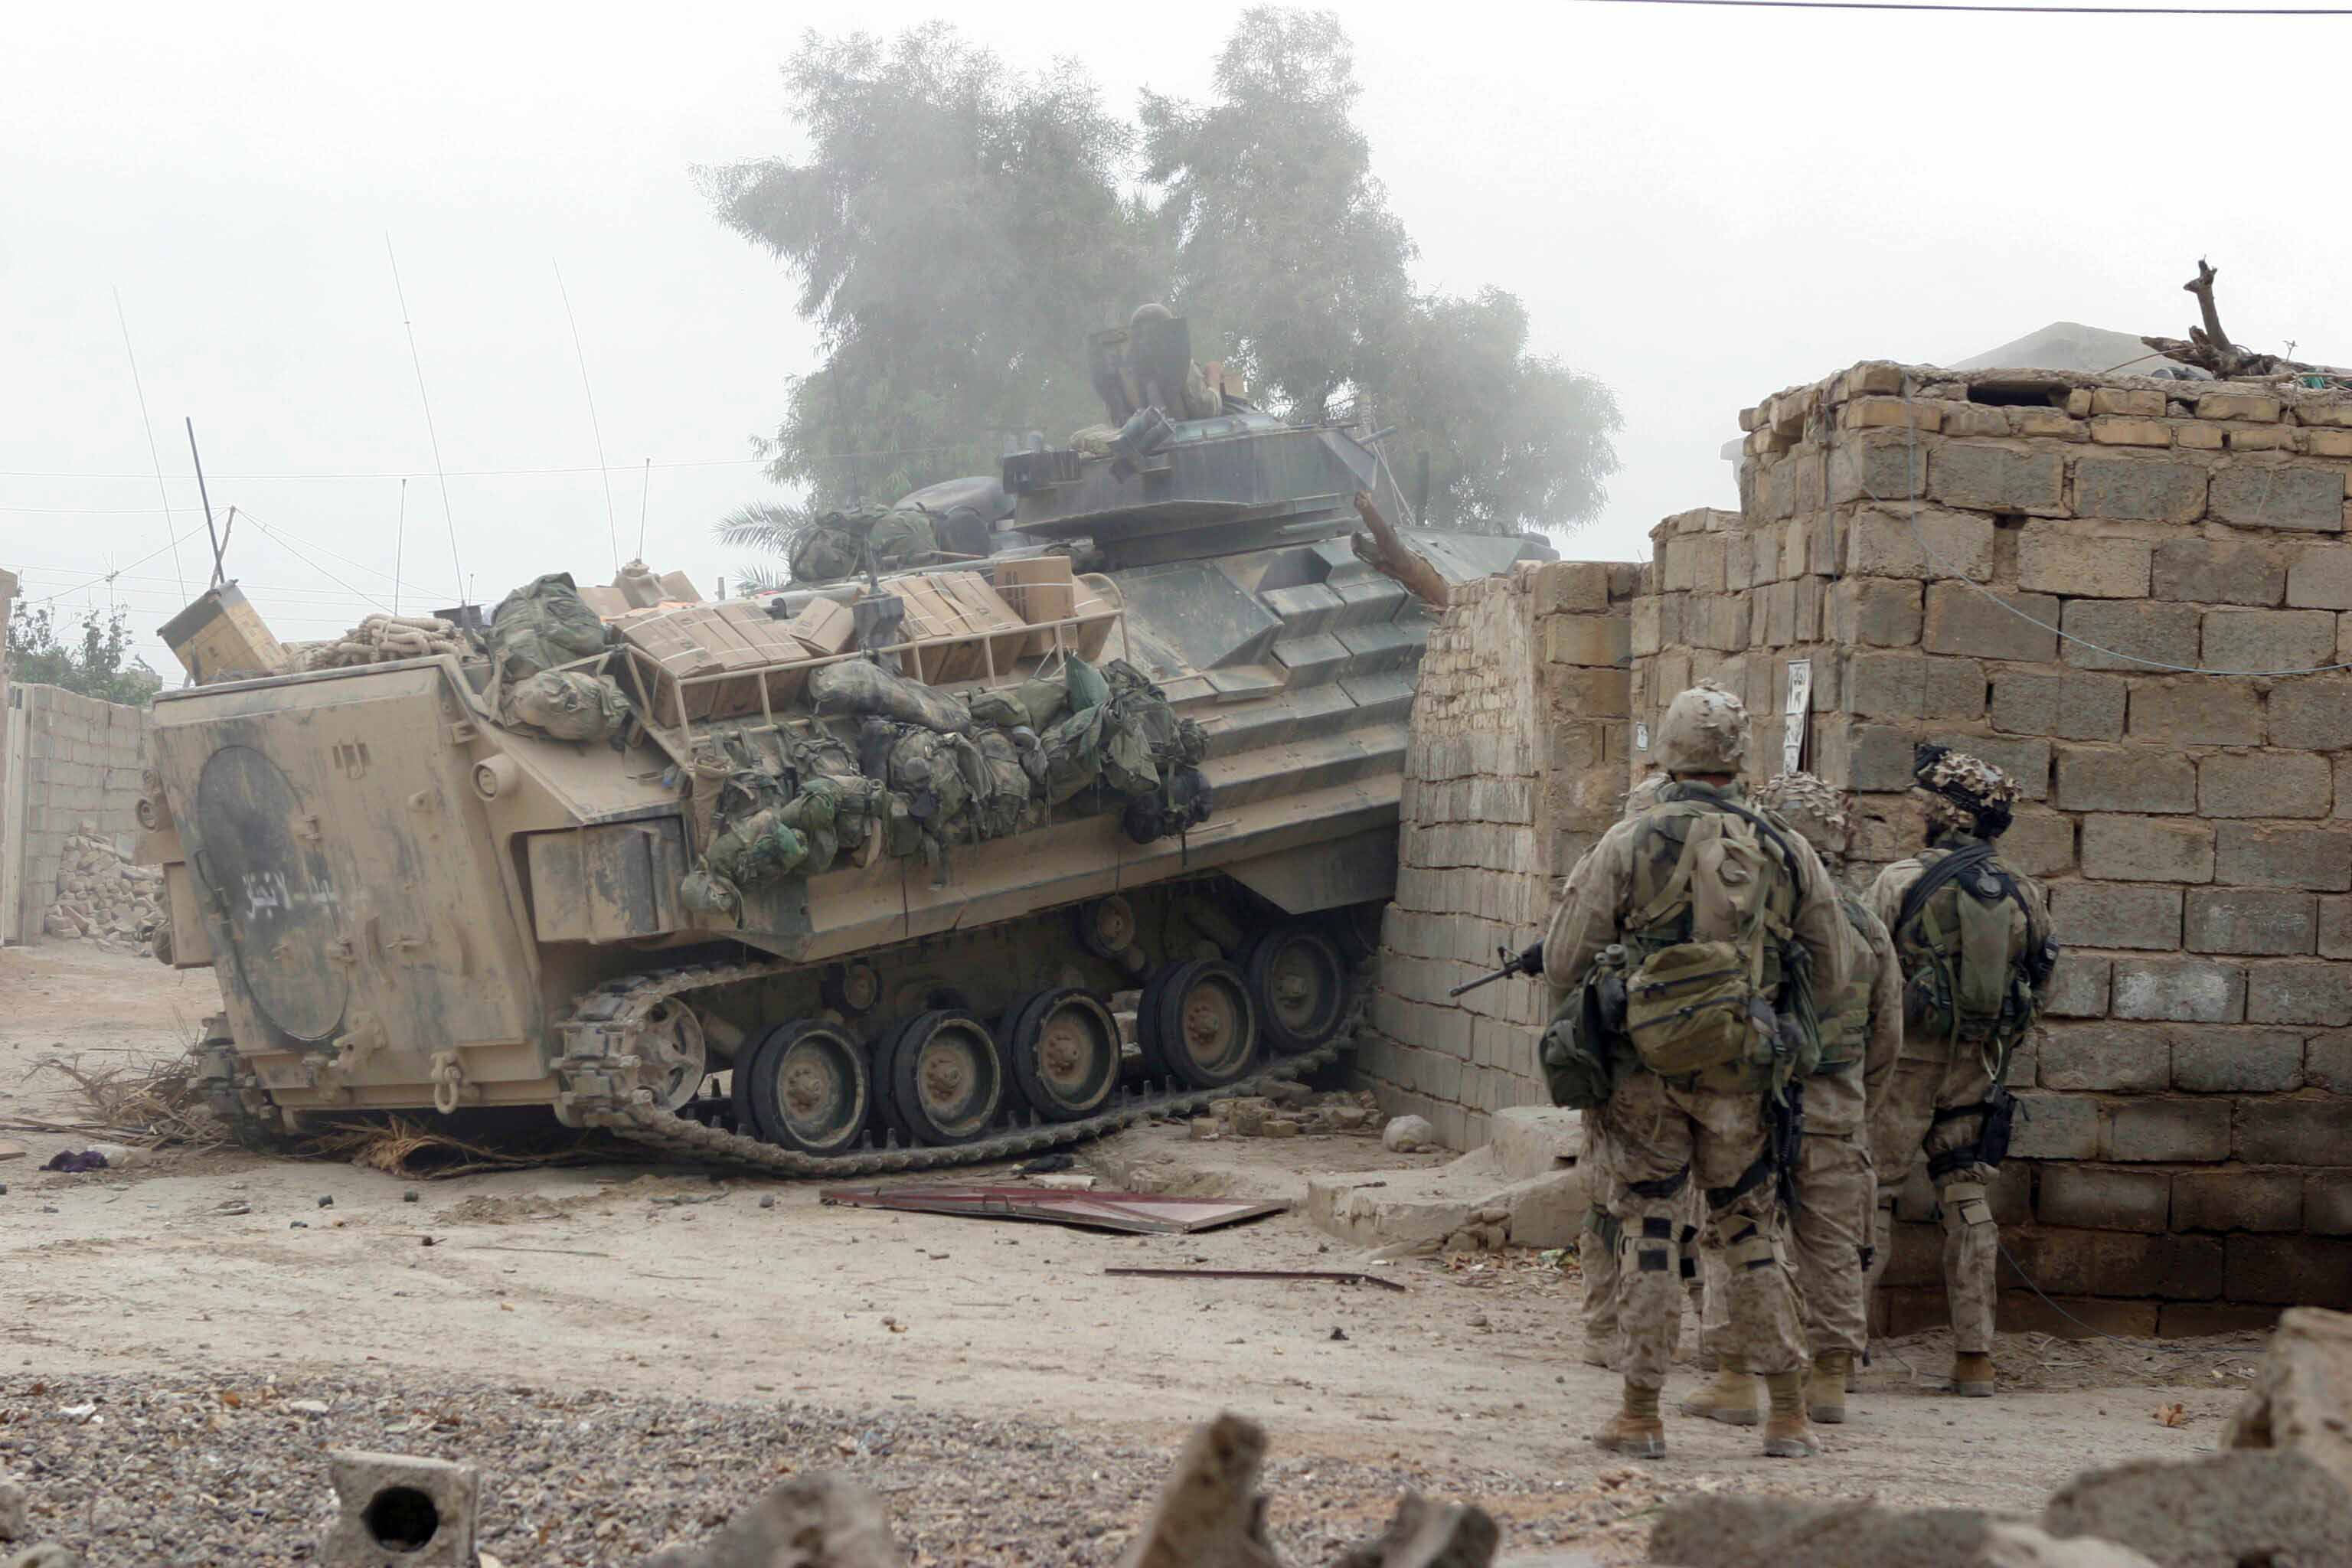 17 Nov 2004: An Amphibious Assault Vehicle (AAV) drives through a wall and locked gate to open a path for Marines from 2nd Platoon, India Company, 3rd Battalion, 1st Marines, 1st Marine Division to gain entrance to a building that needed to be cleared.  Operation Al Fajr is an offensive operation to eradicate enemy forces within the city of Fallujah in support of continuing security and stabilization operations in the Al Anbar province of Iraq by units of the 1st Marine Division.   Official USMC Photograph by LCpl Ryan L Jones